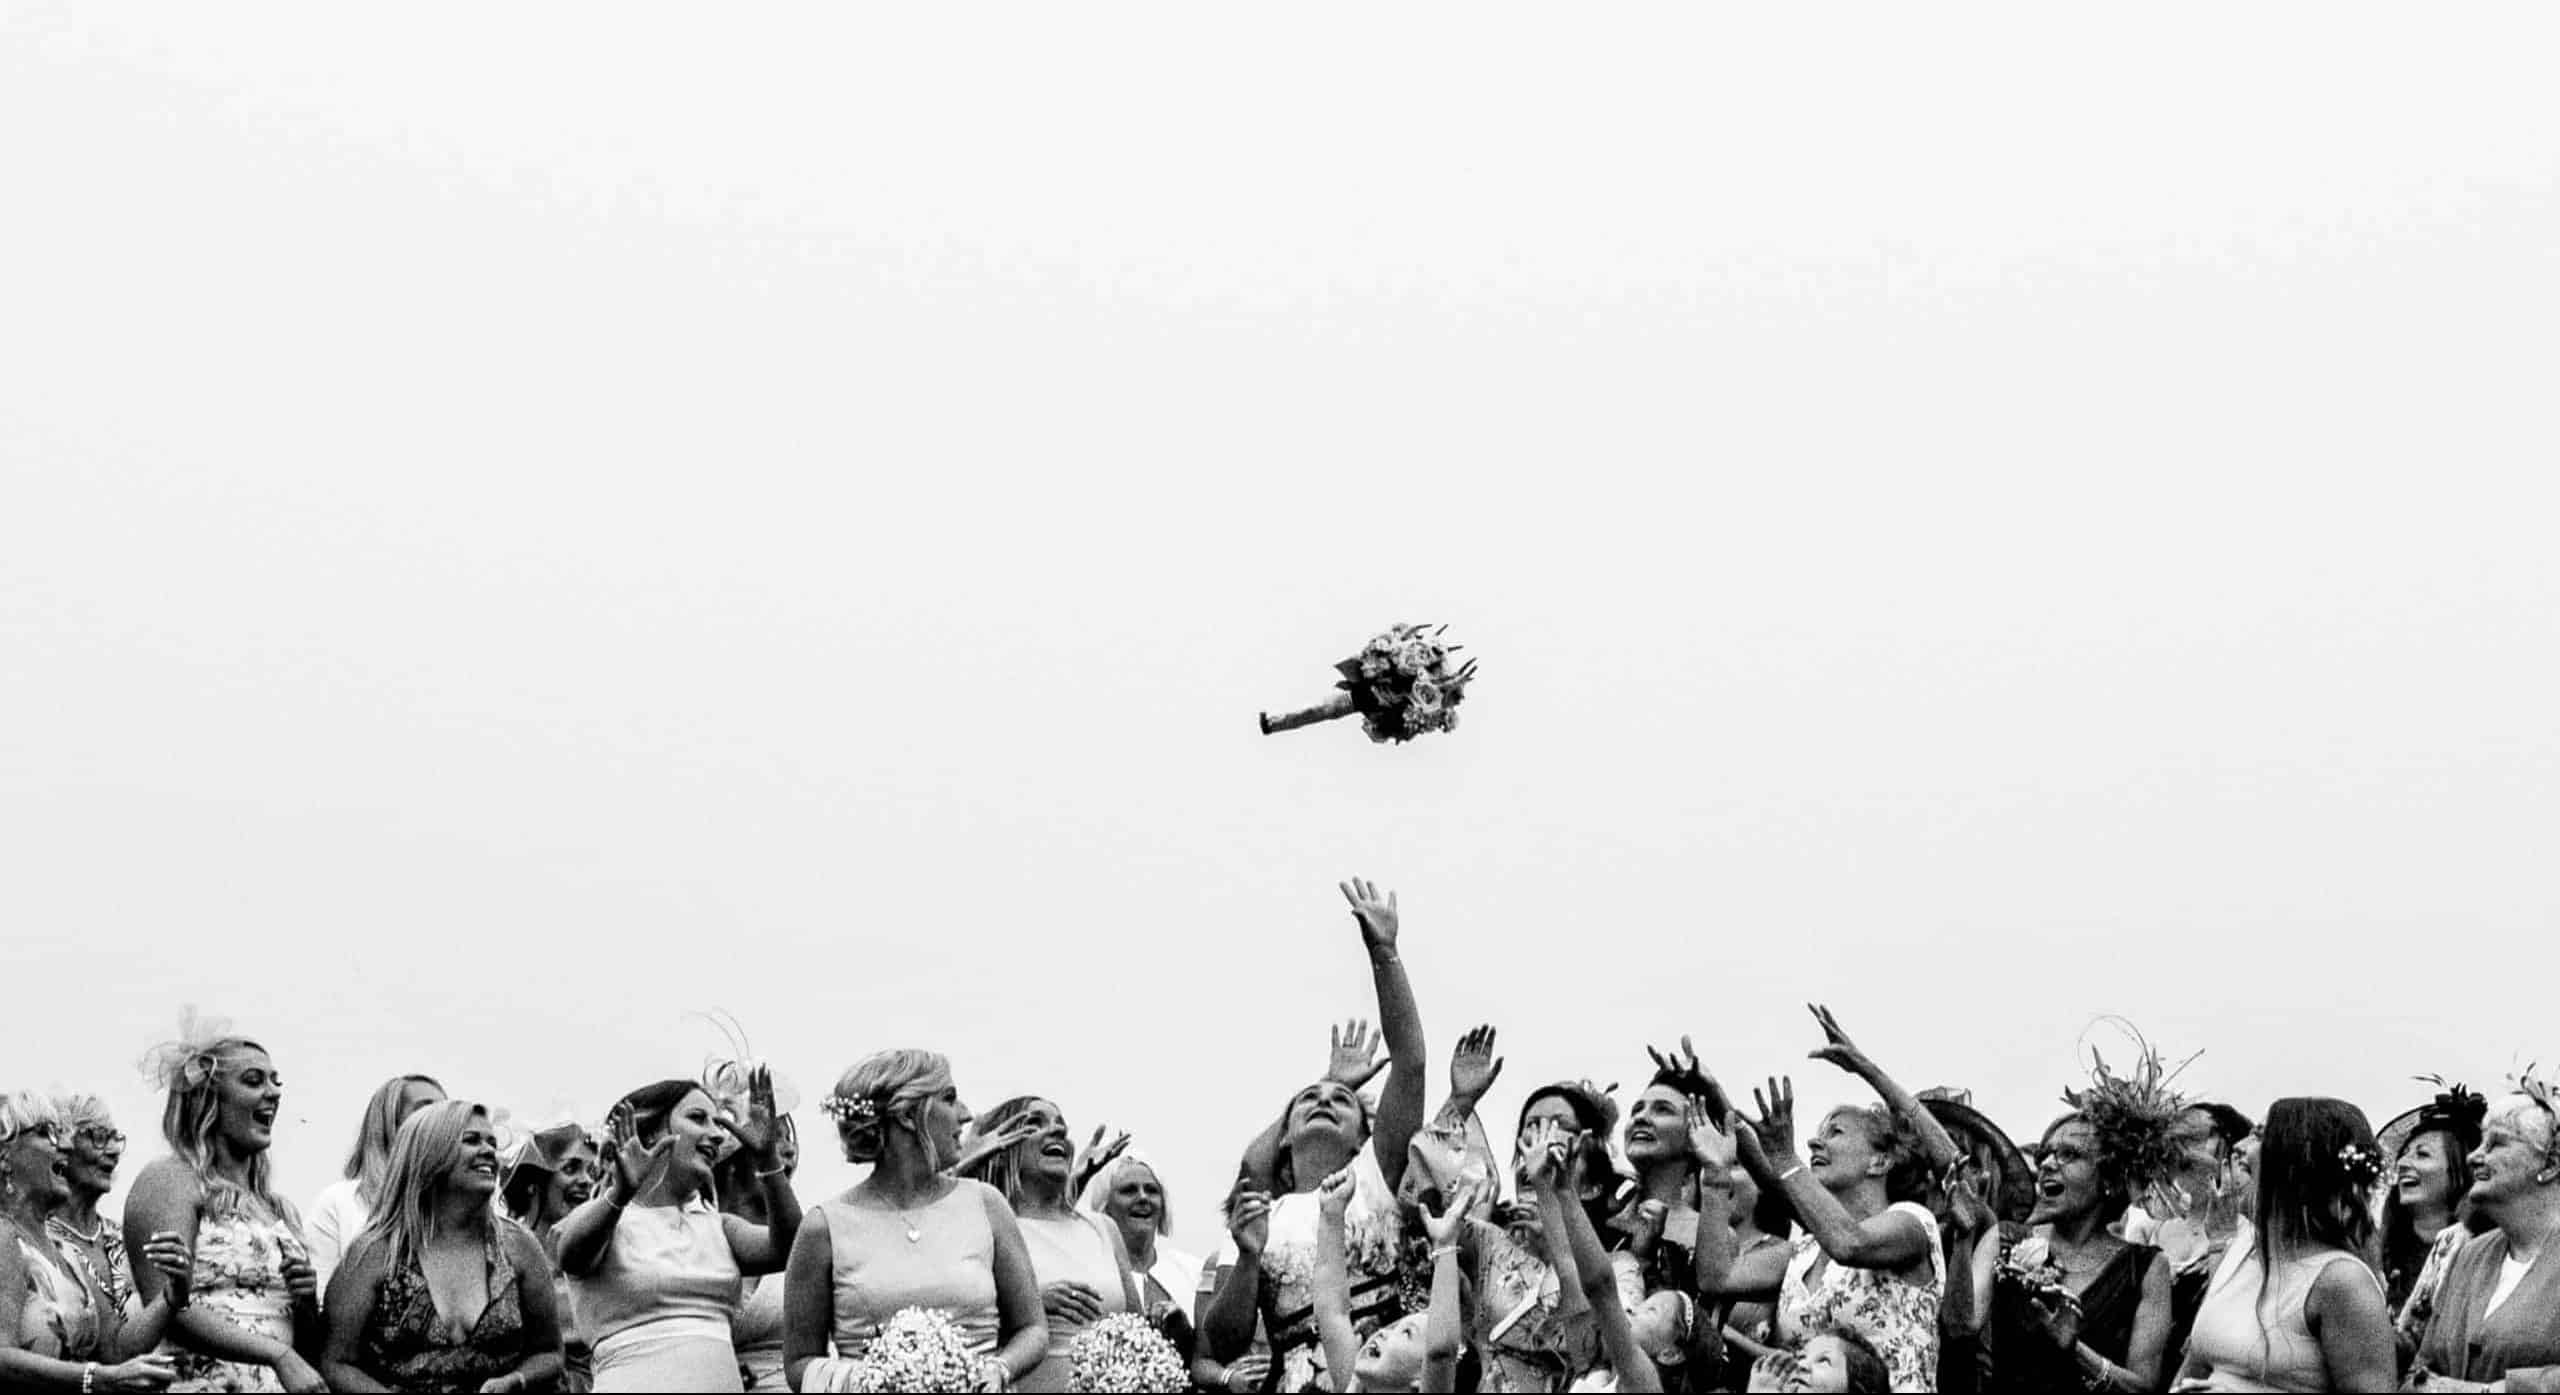 award winning image by m and g wedding photography all the women at the wedding gather together for a bouquet toss